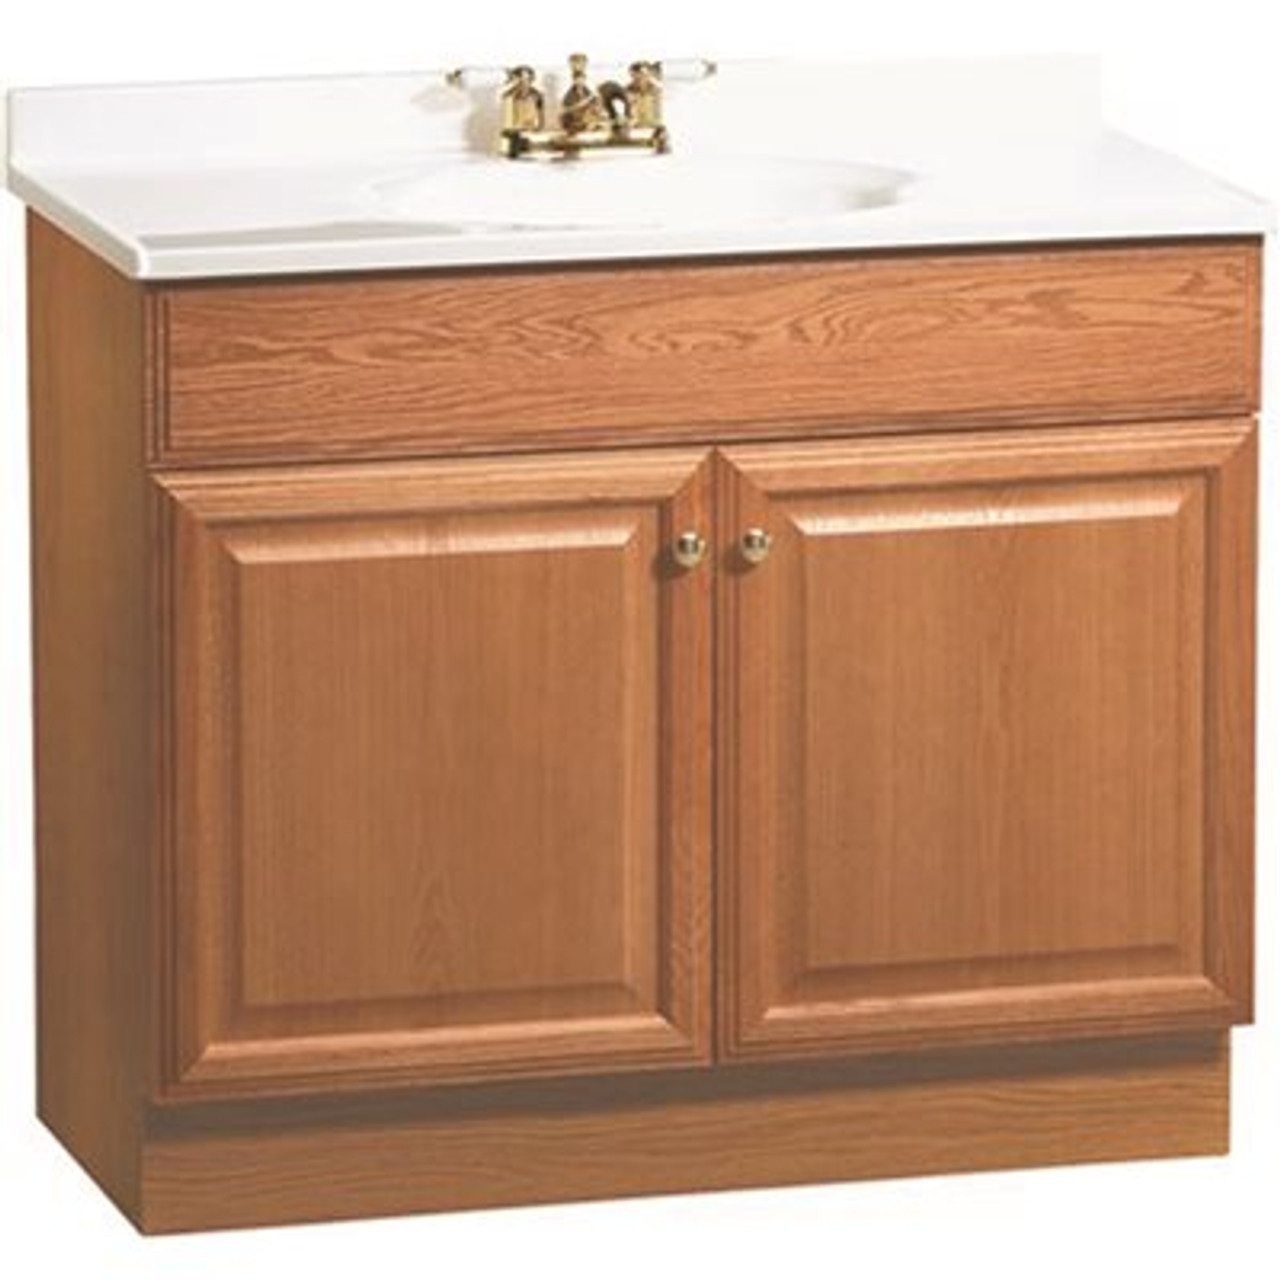 RSI HOME PRODUCTS 36 in. x 31 in. x 18 in. Richmond Bathroom Vanity Cabinet with Top with 2-Door in Oak Item # 270123 RSI HOME PRODUCTS Part # C14036A UPC Code 094803067254 UNSPSC Code 30161801